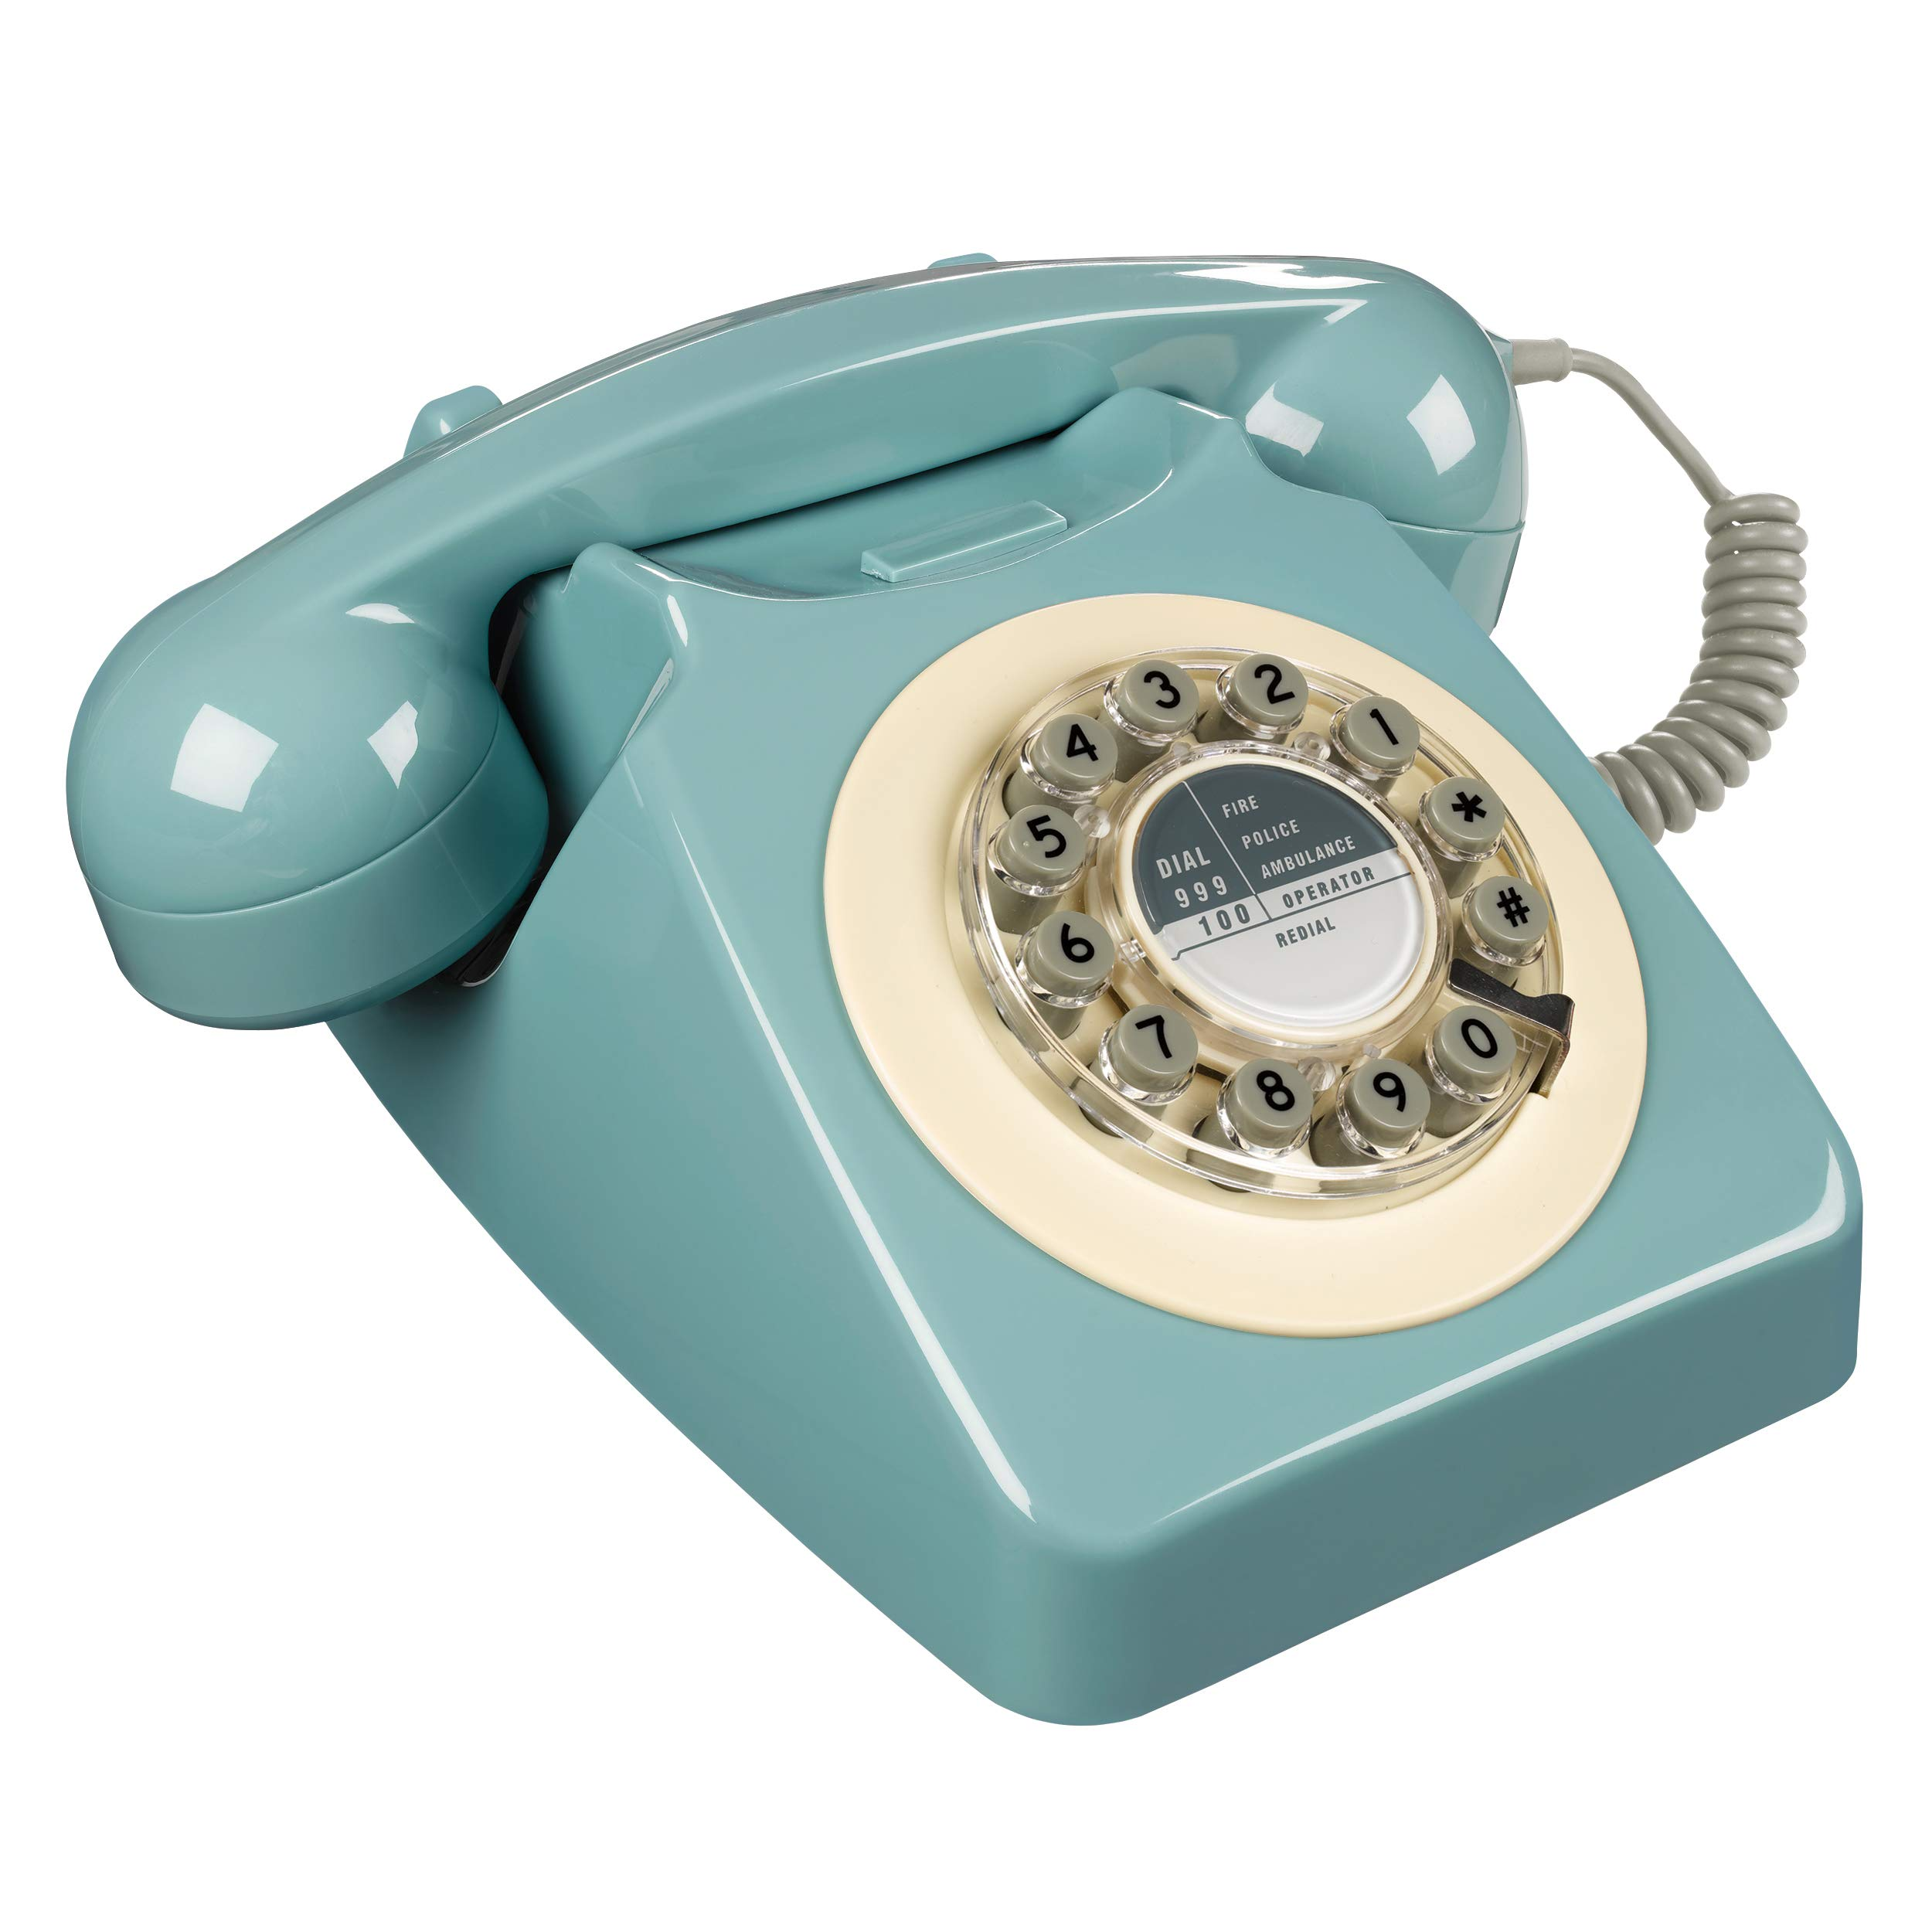 Rotary Design Retro Landline Phone for Home, French Blue by Wild Wood